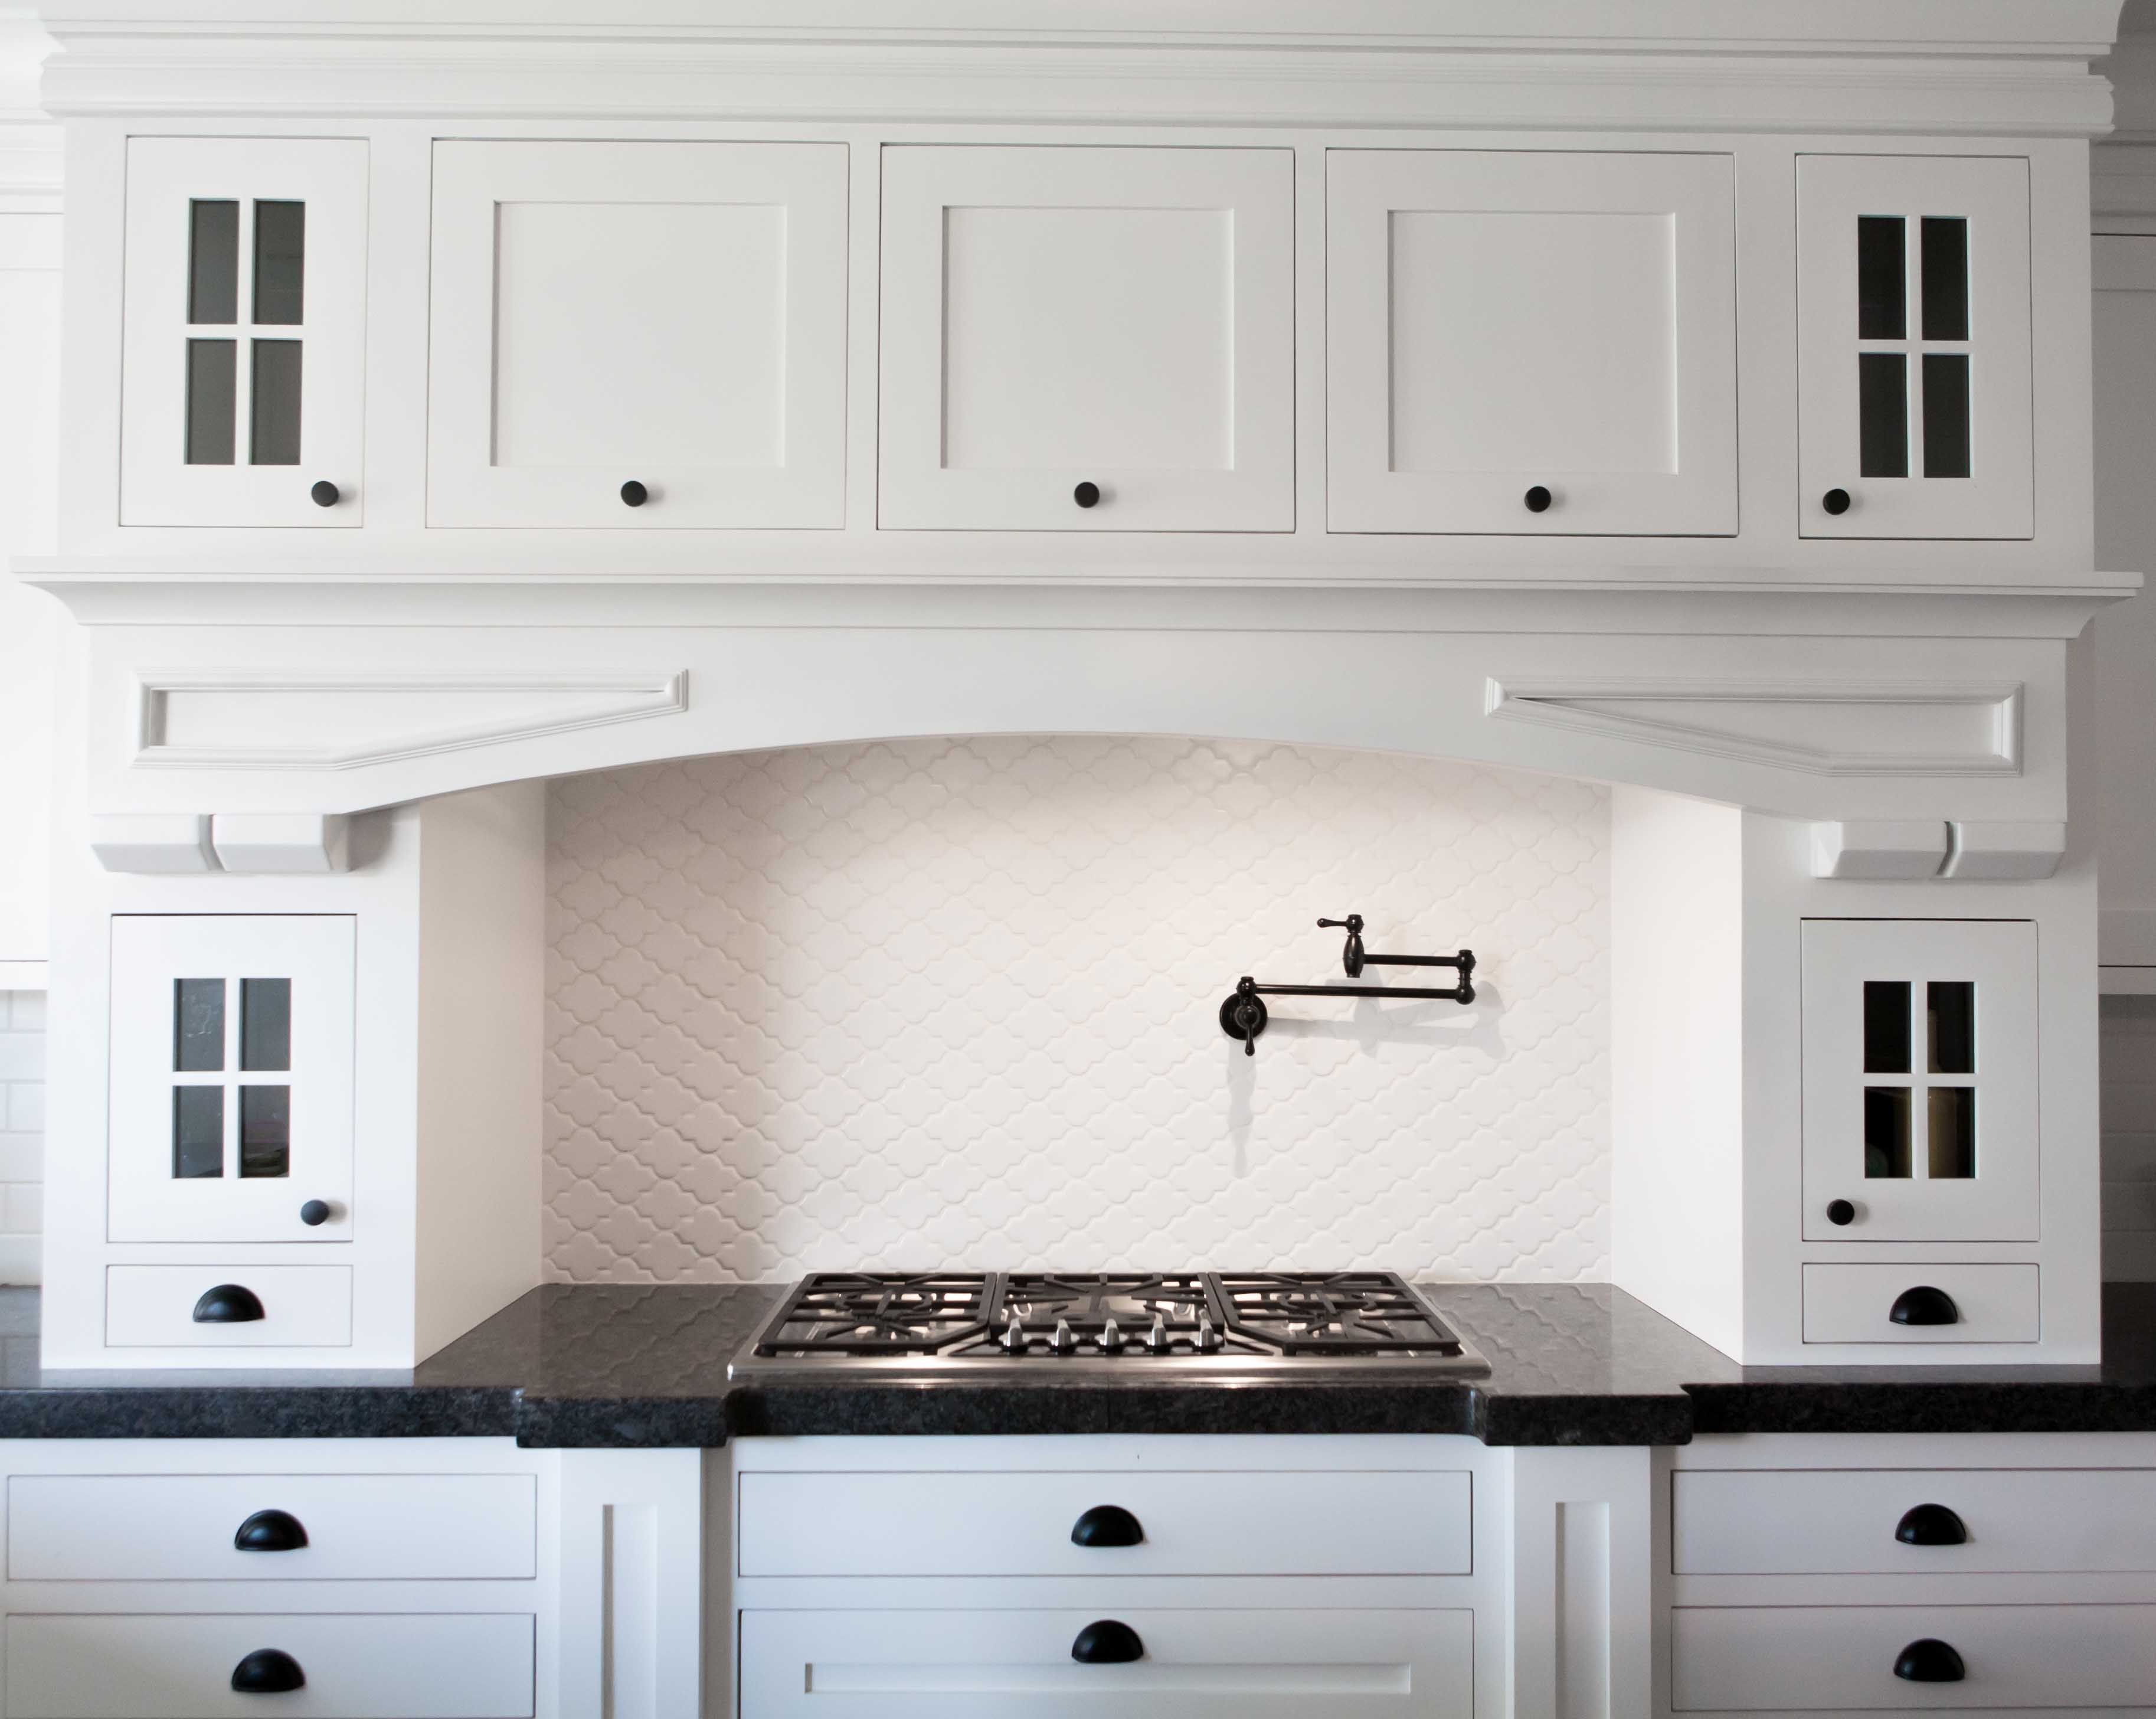 The cabinet fronts are called Shaker Style which is a